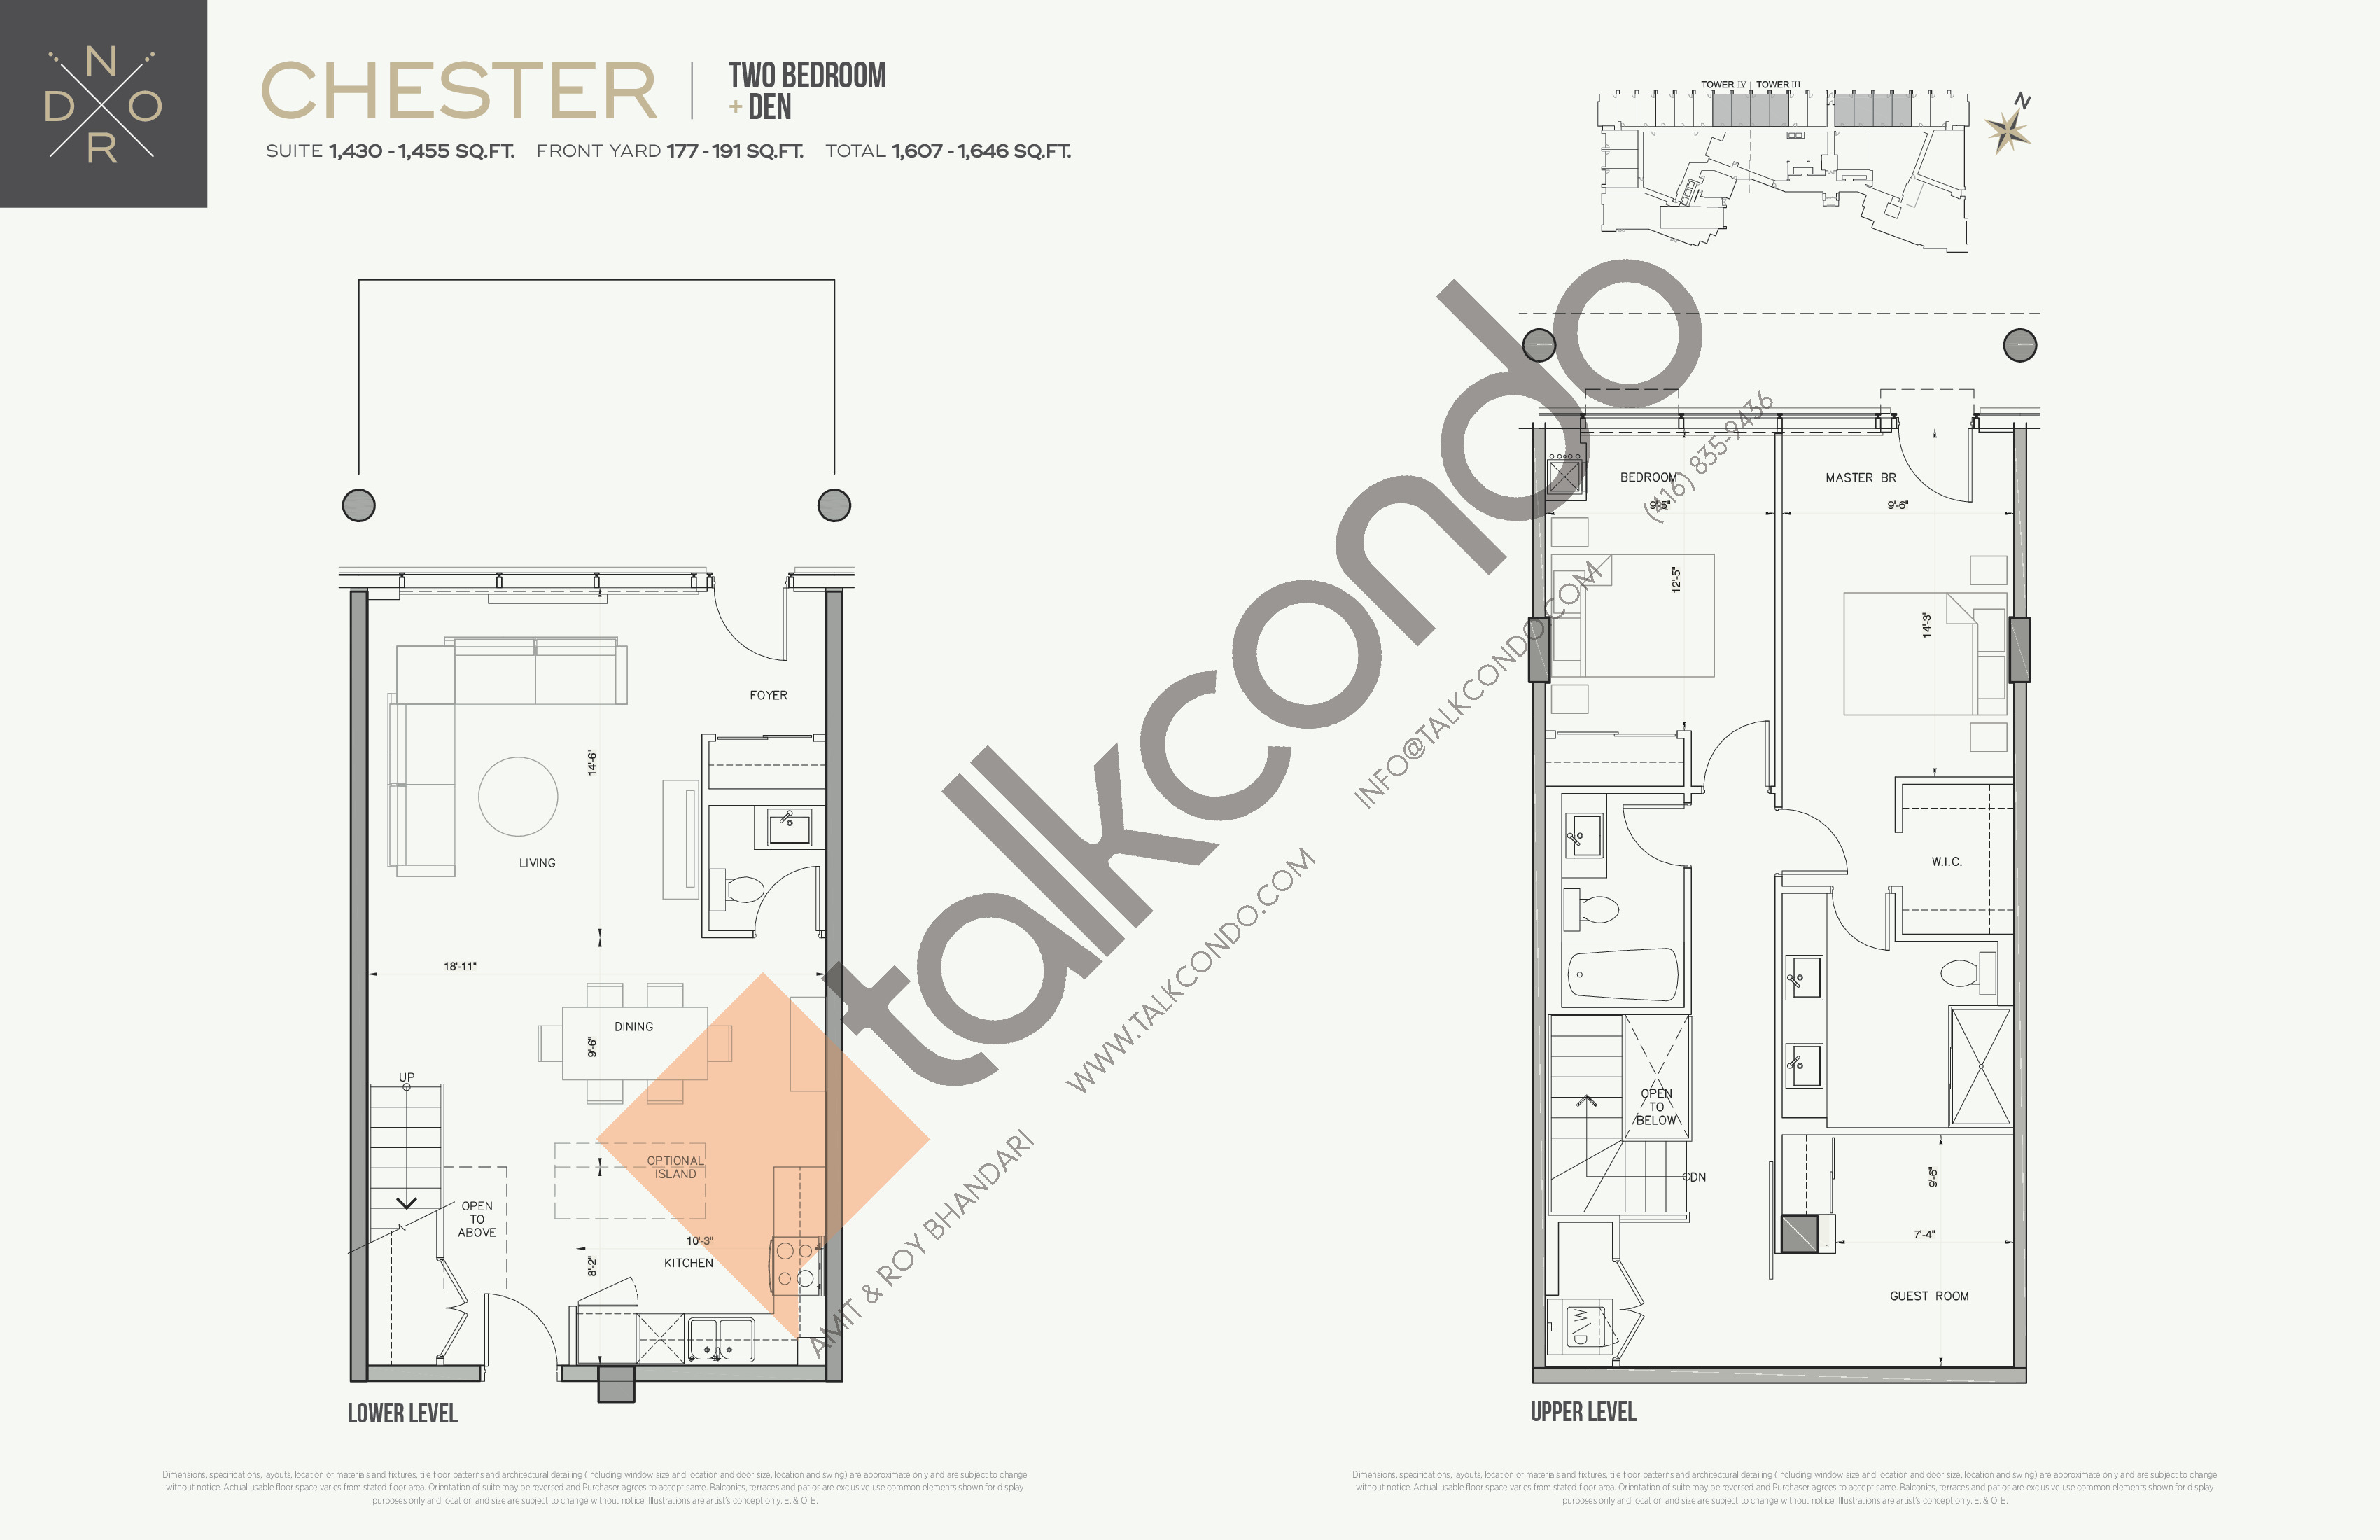 Chester Floor Plan at Nord West at Expo City Condos - 1455 sq.ft